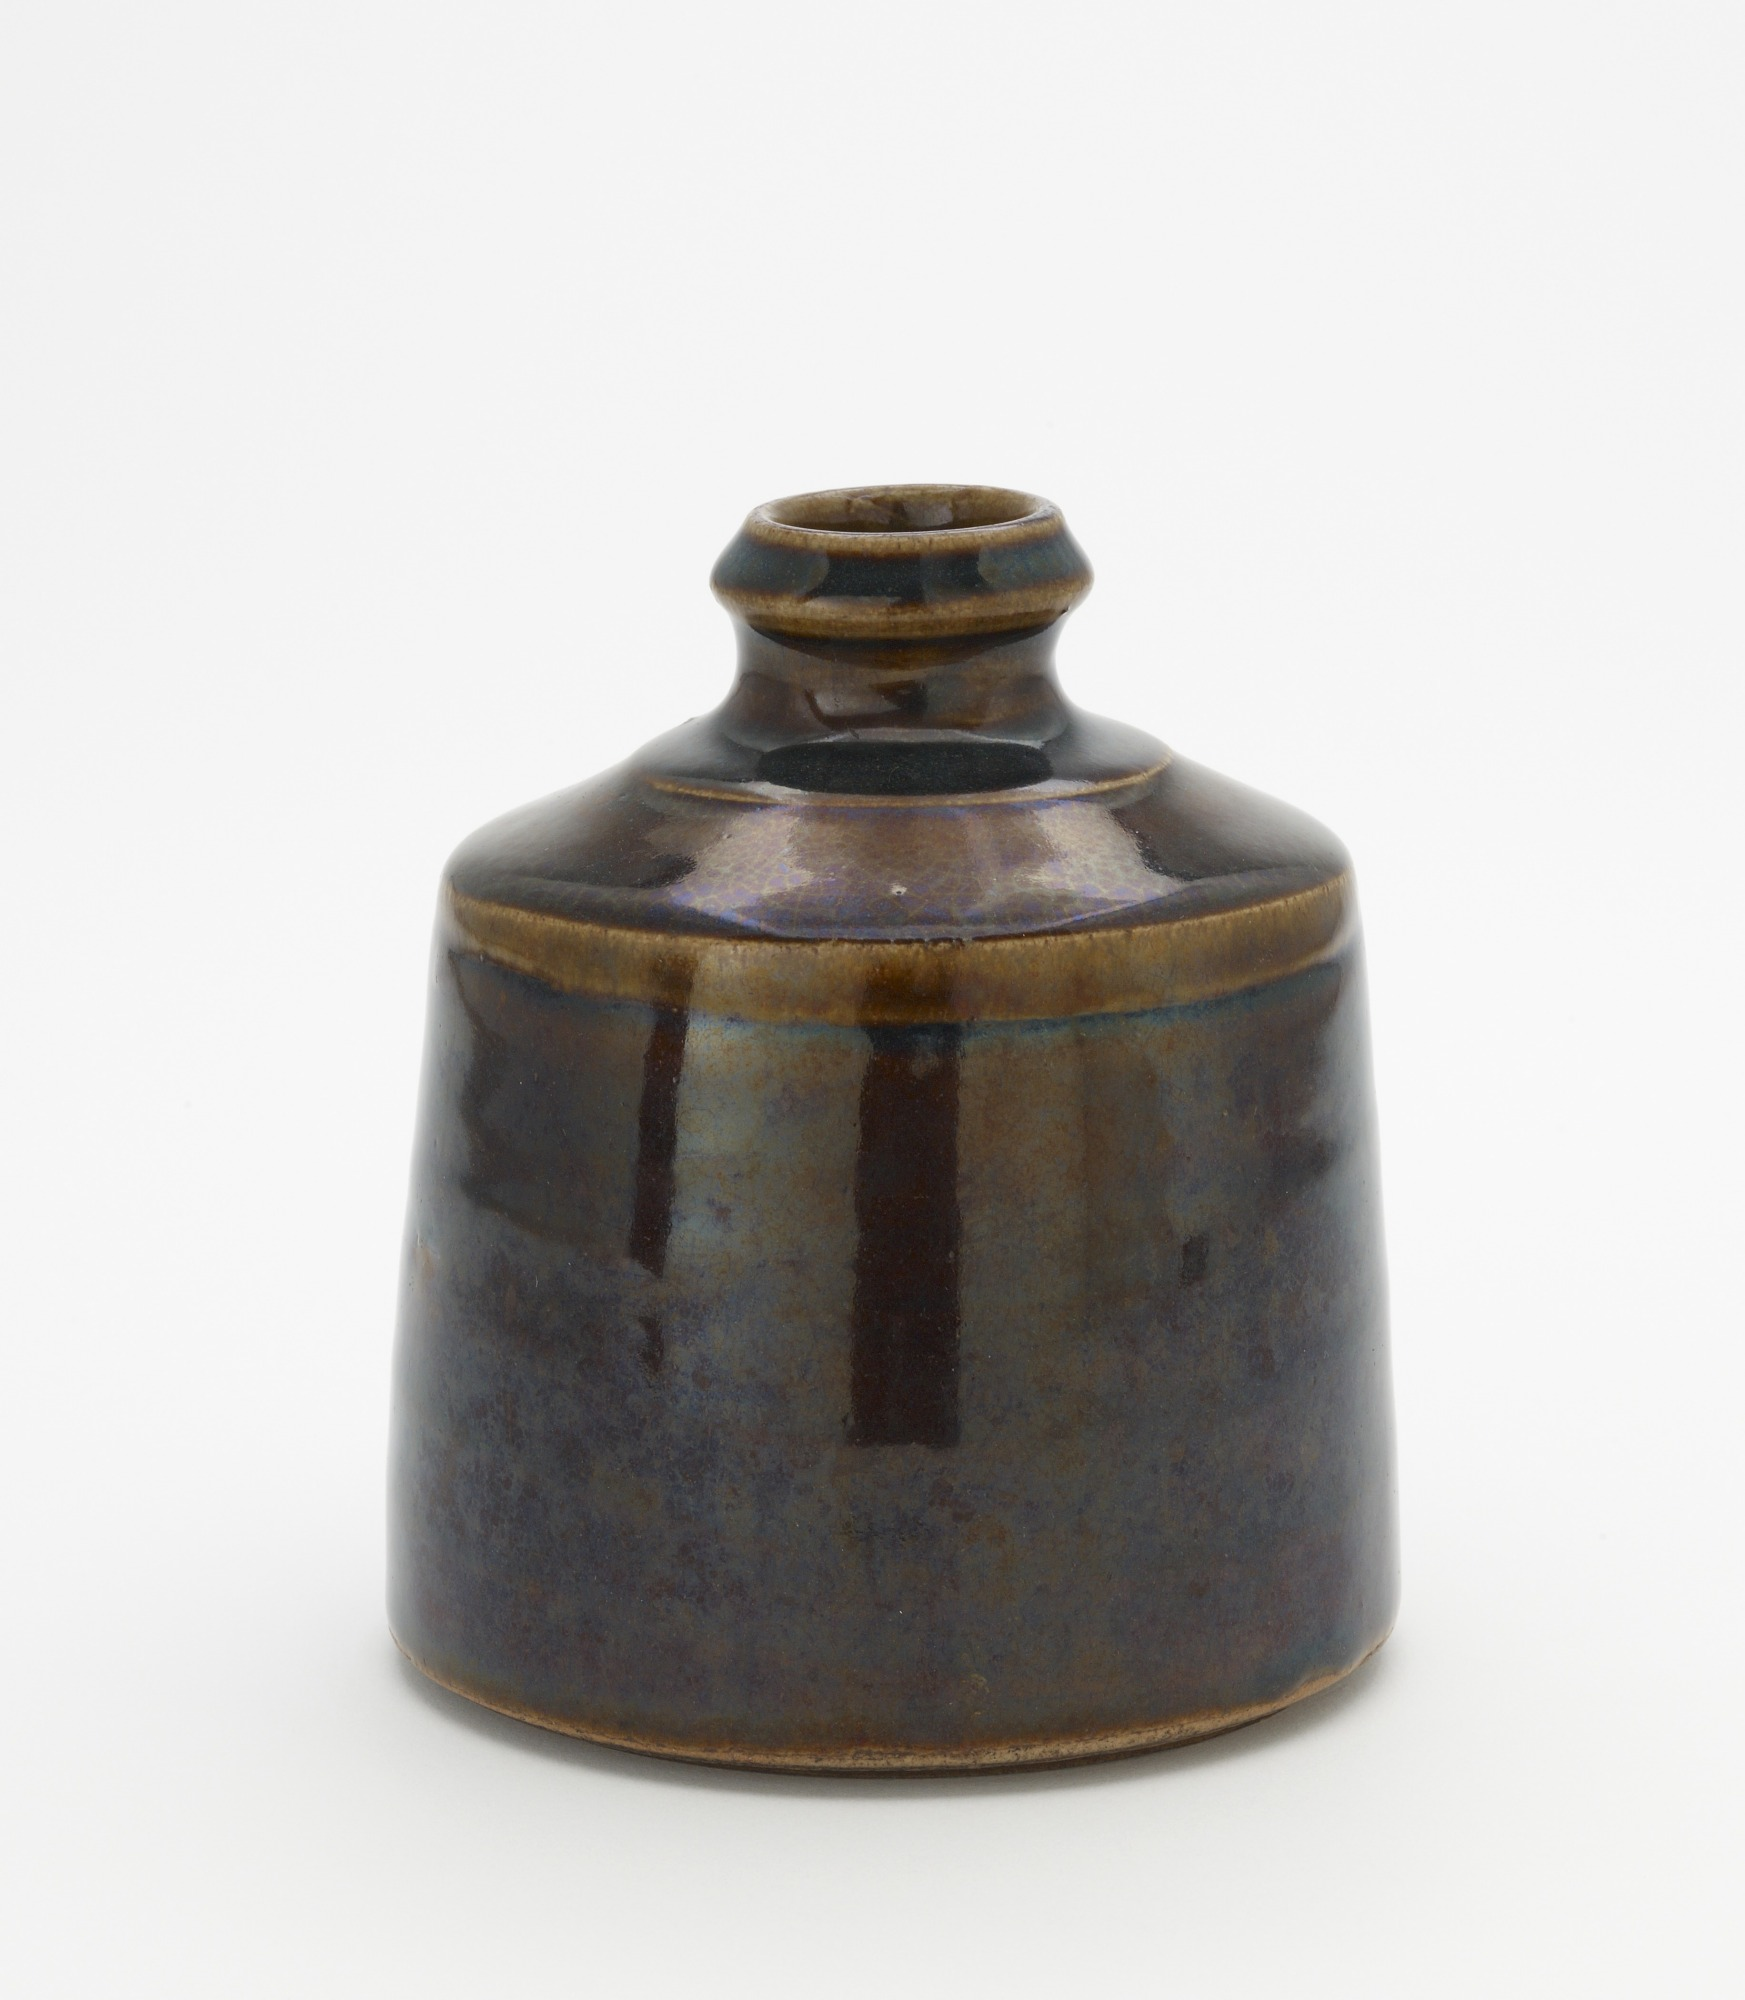 Sake bottle, Seto-related or Kyoto-related ware